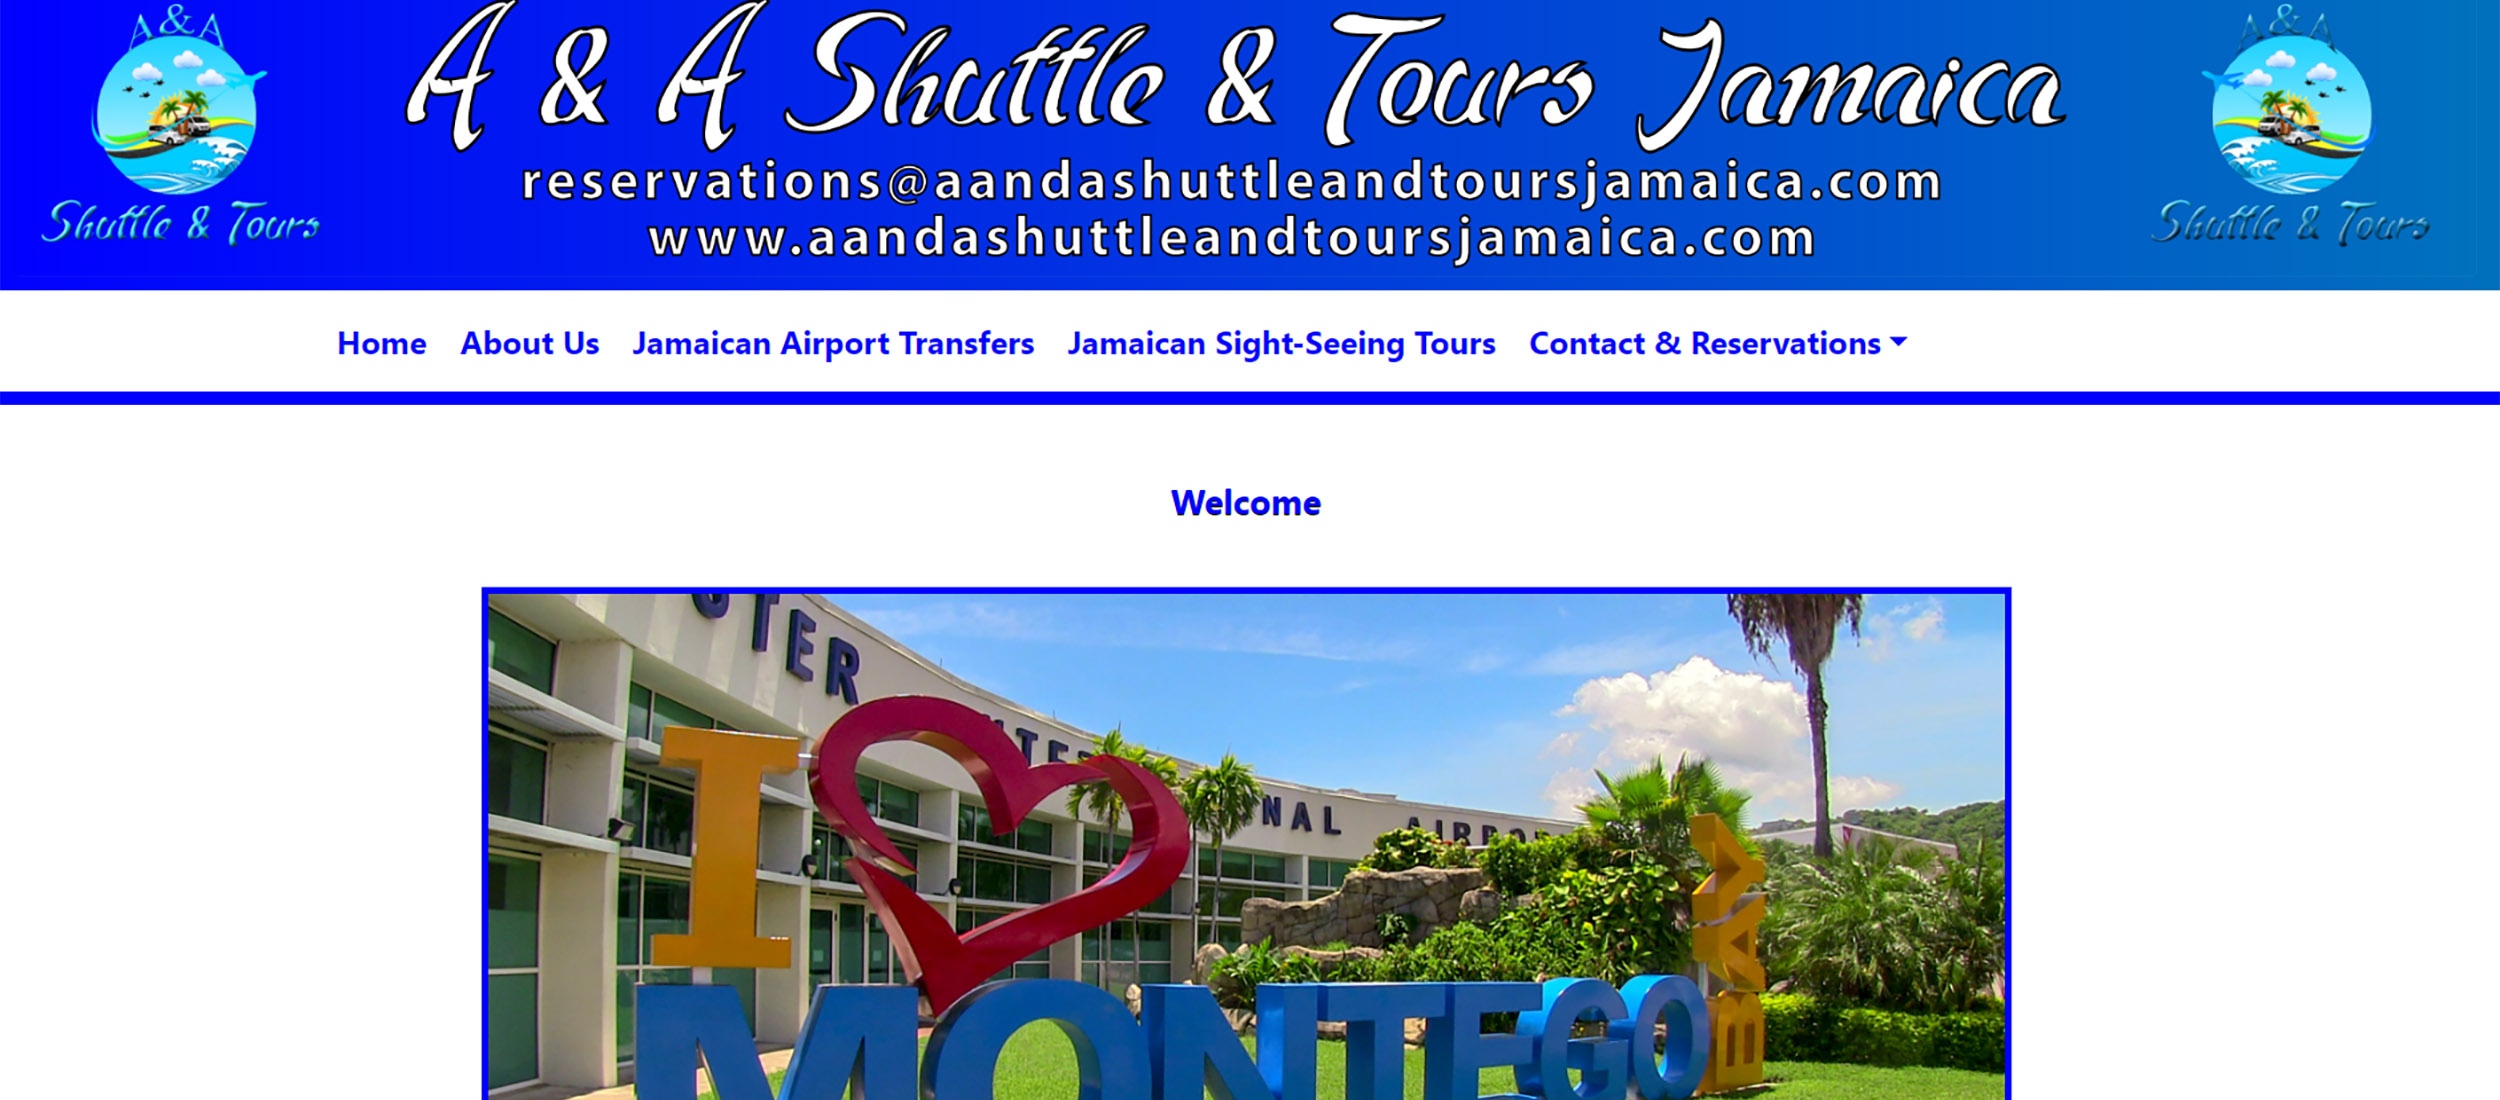 A and A Shuttle and Tours Jamaica by Barry J. Hough Sr.